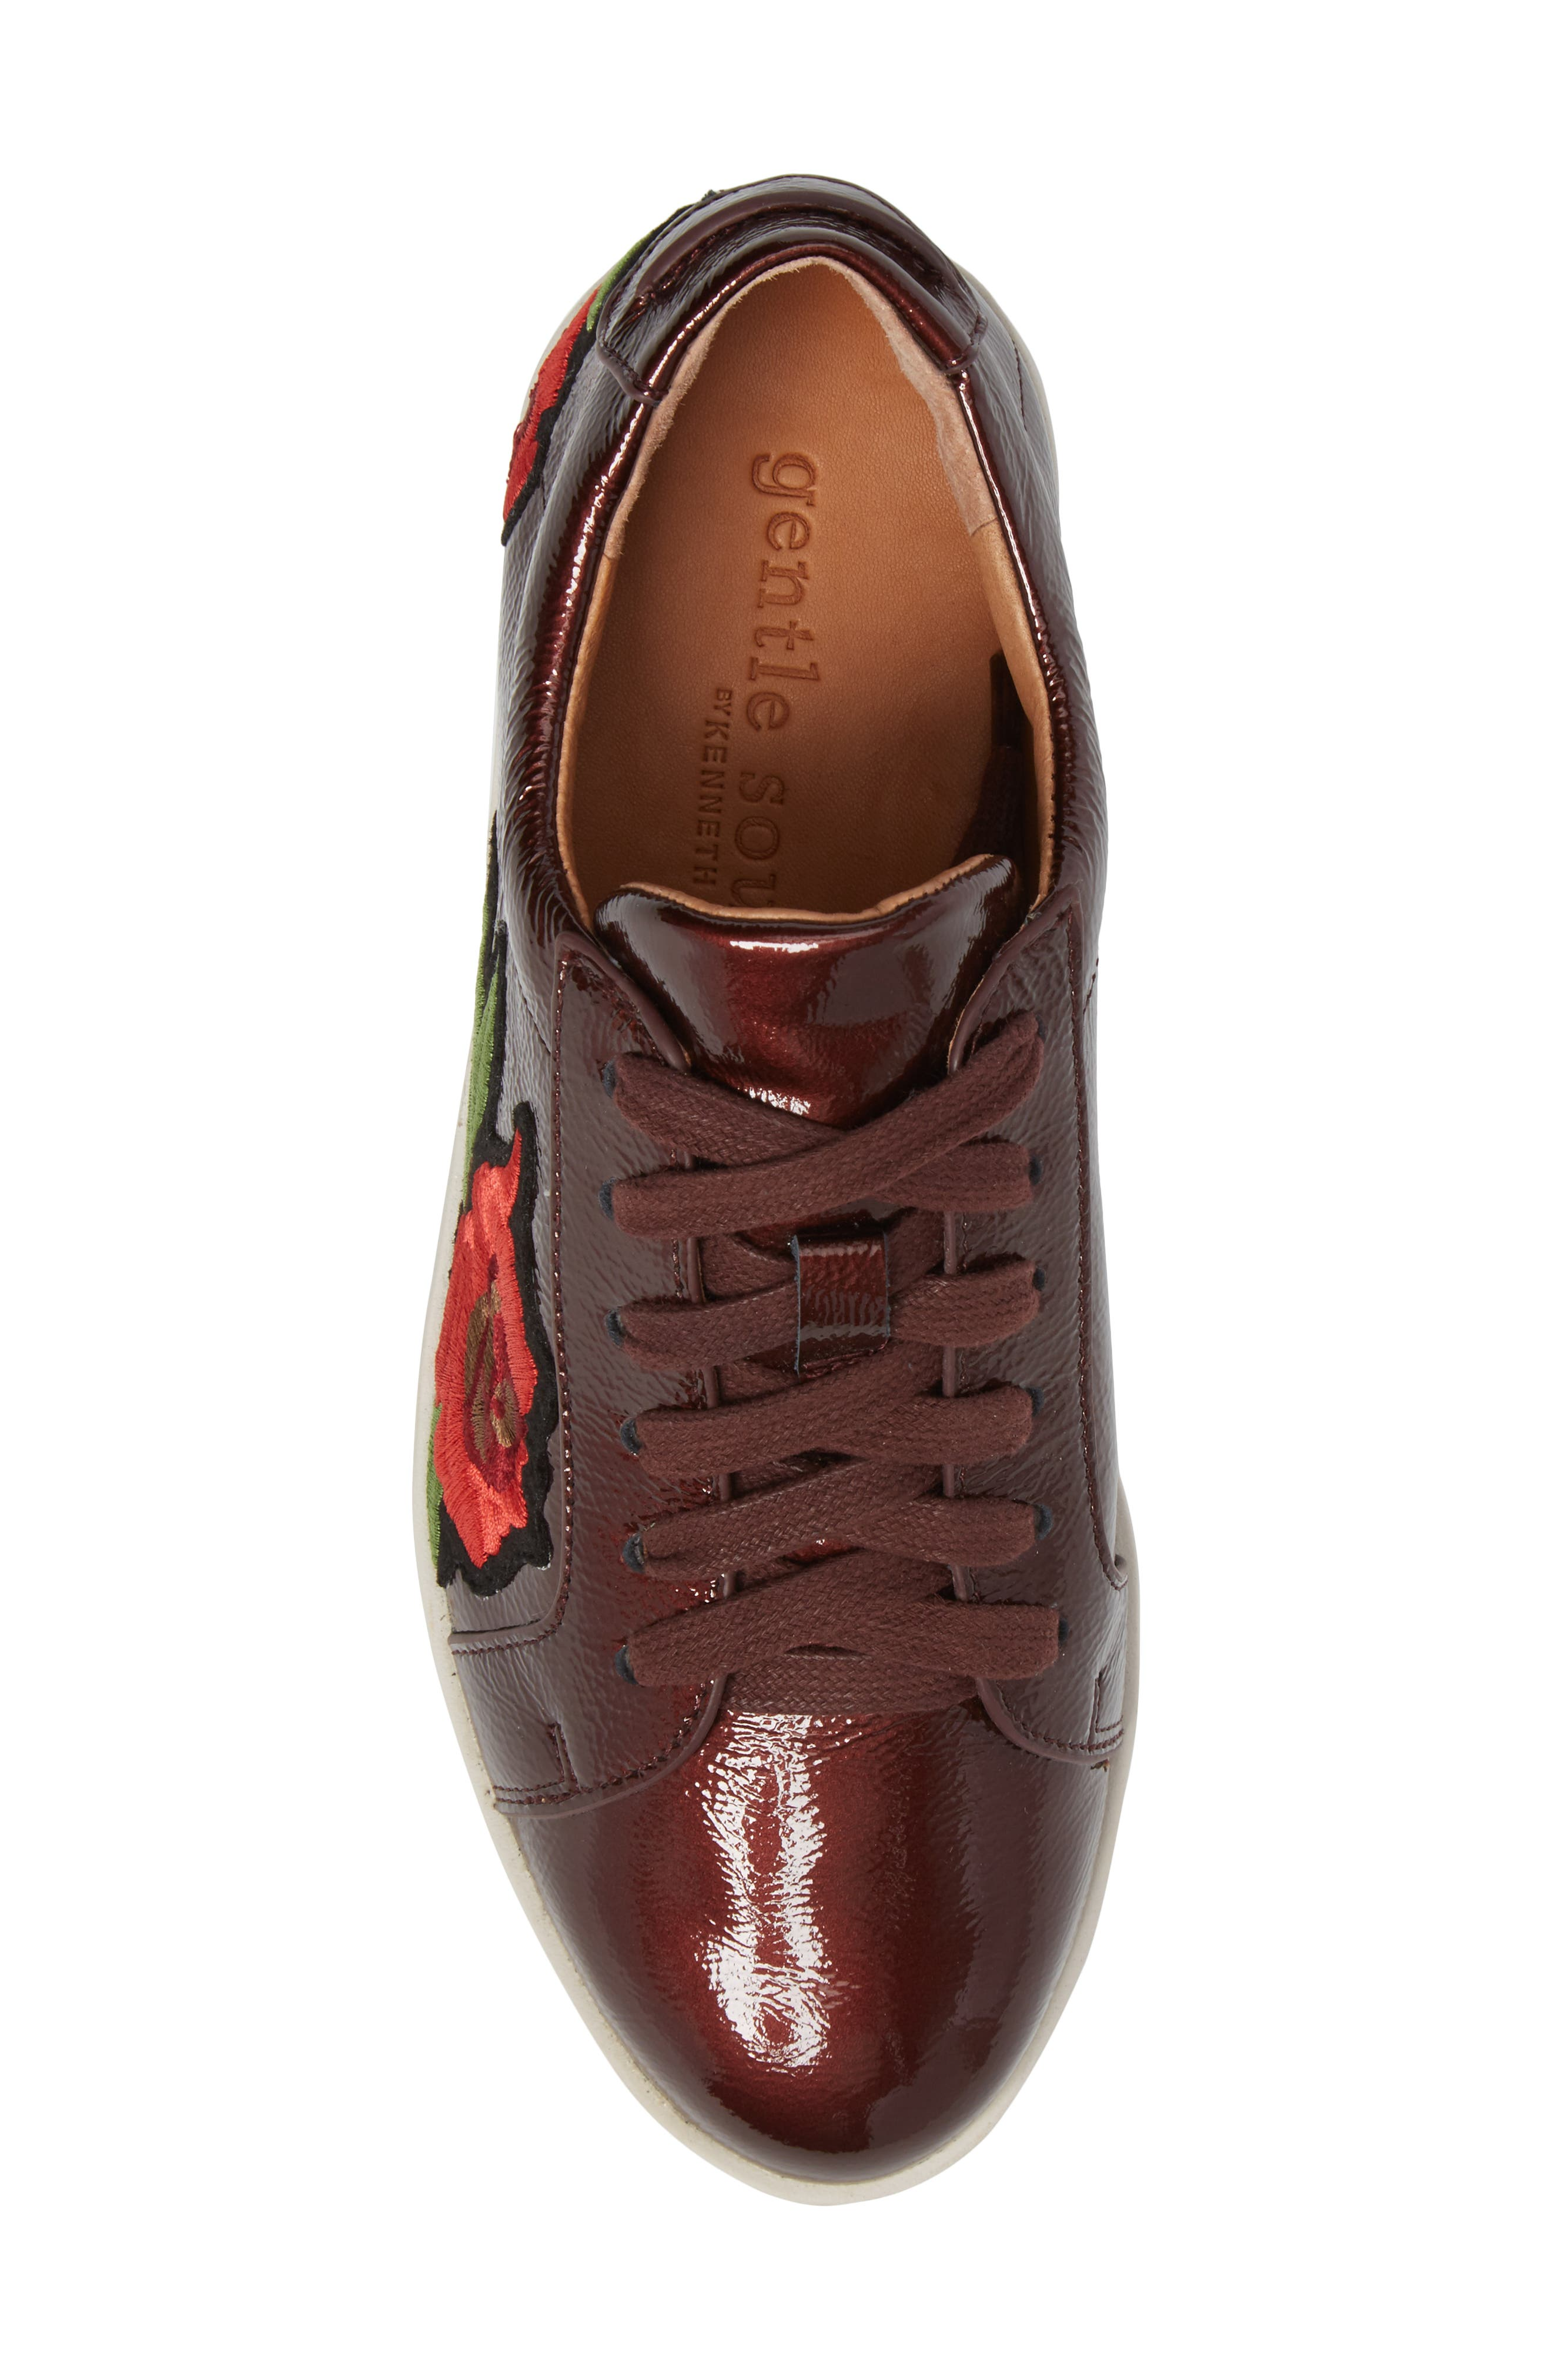 Gentle Soles Haddie Rose Sneaker,                             Alternate thumbnail 5, color,                             Wine Patent Leather